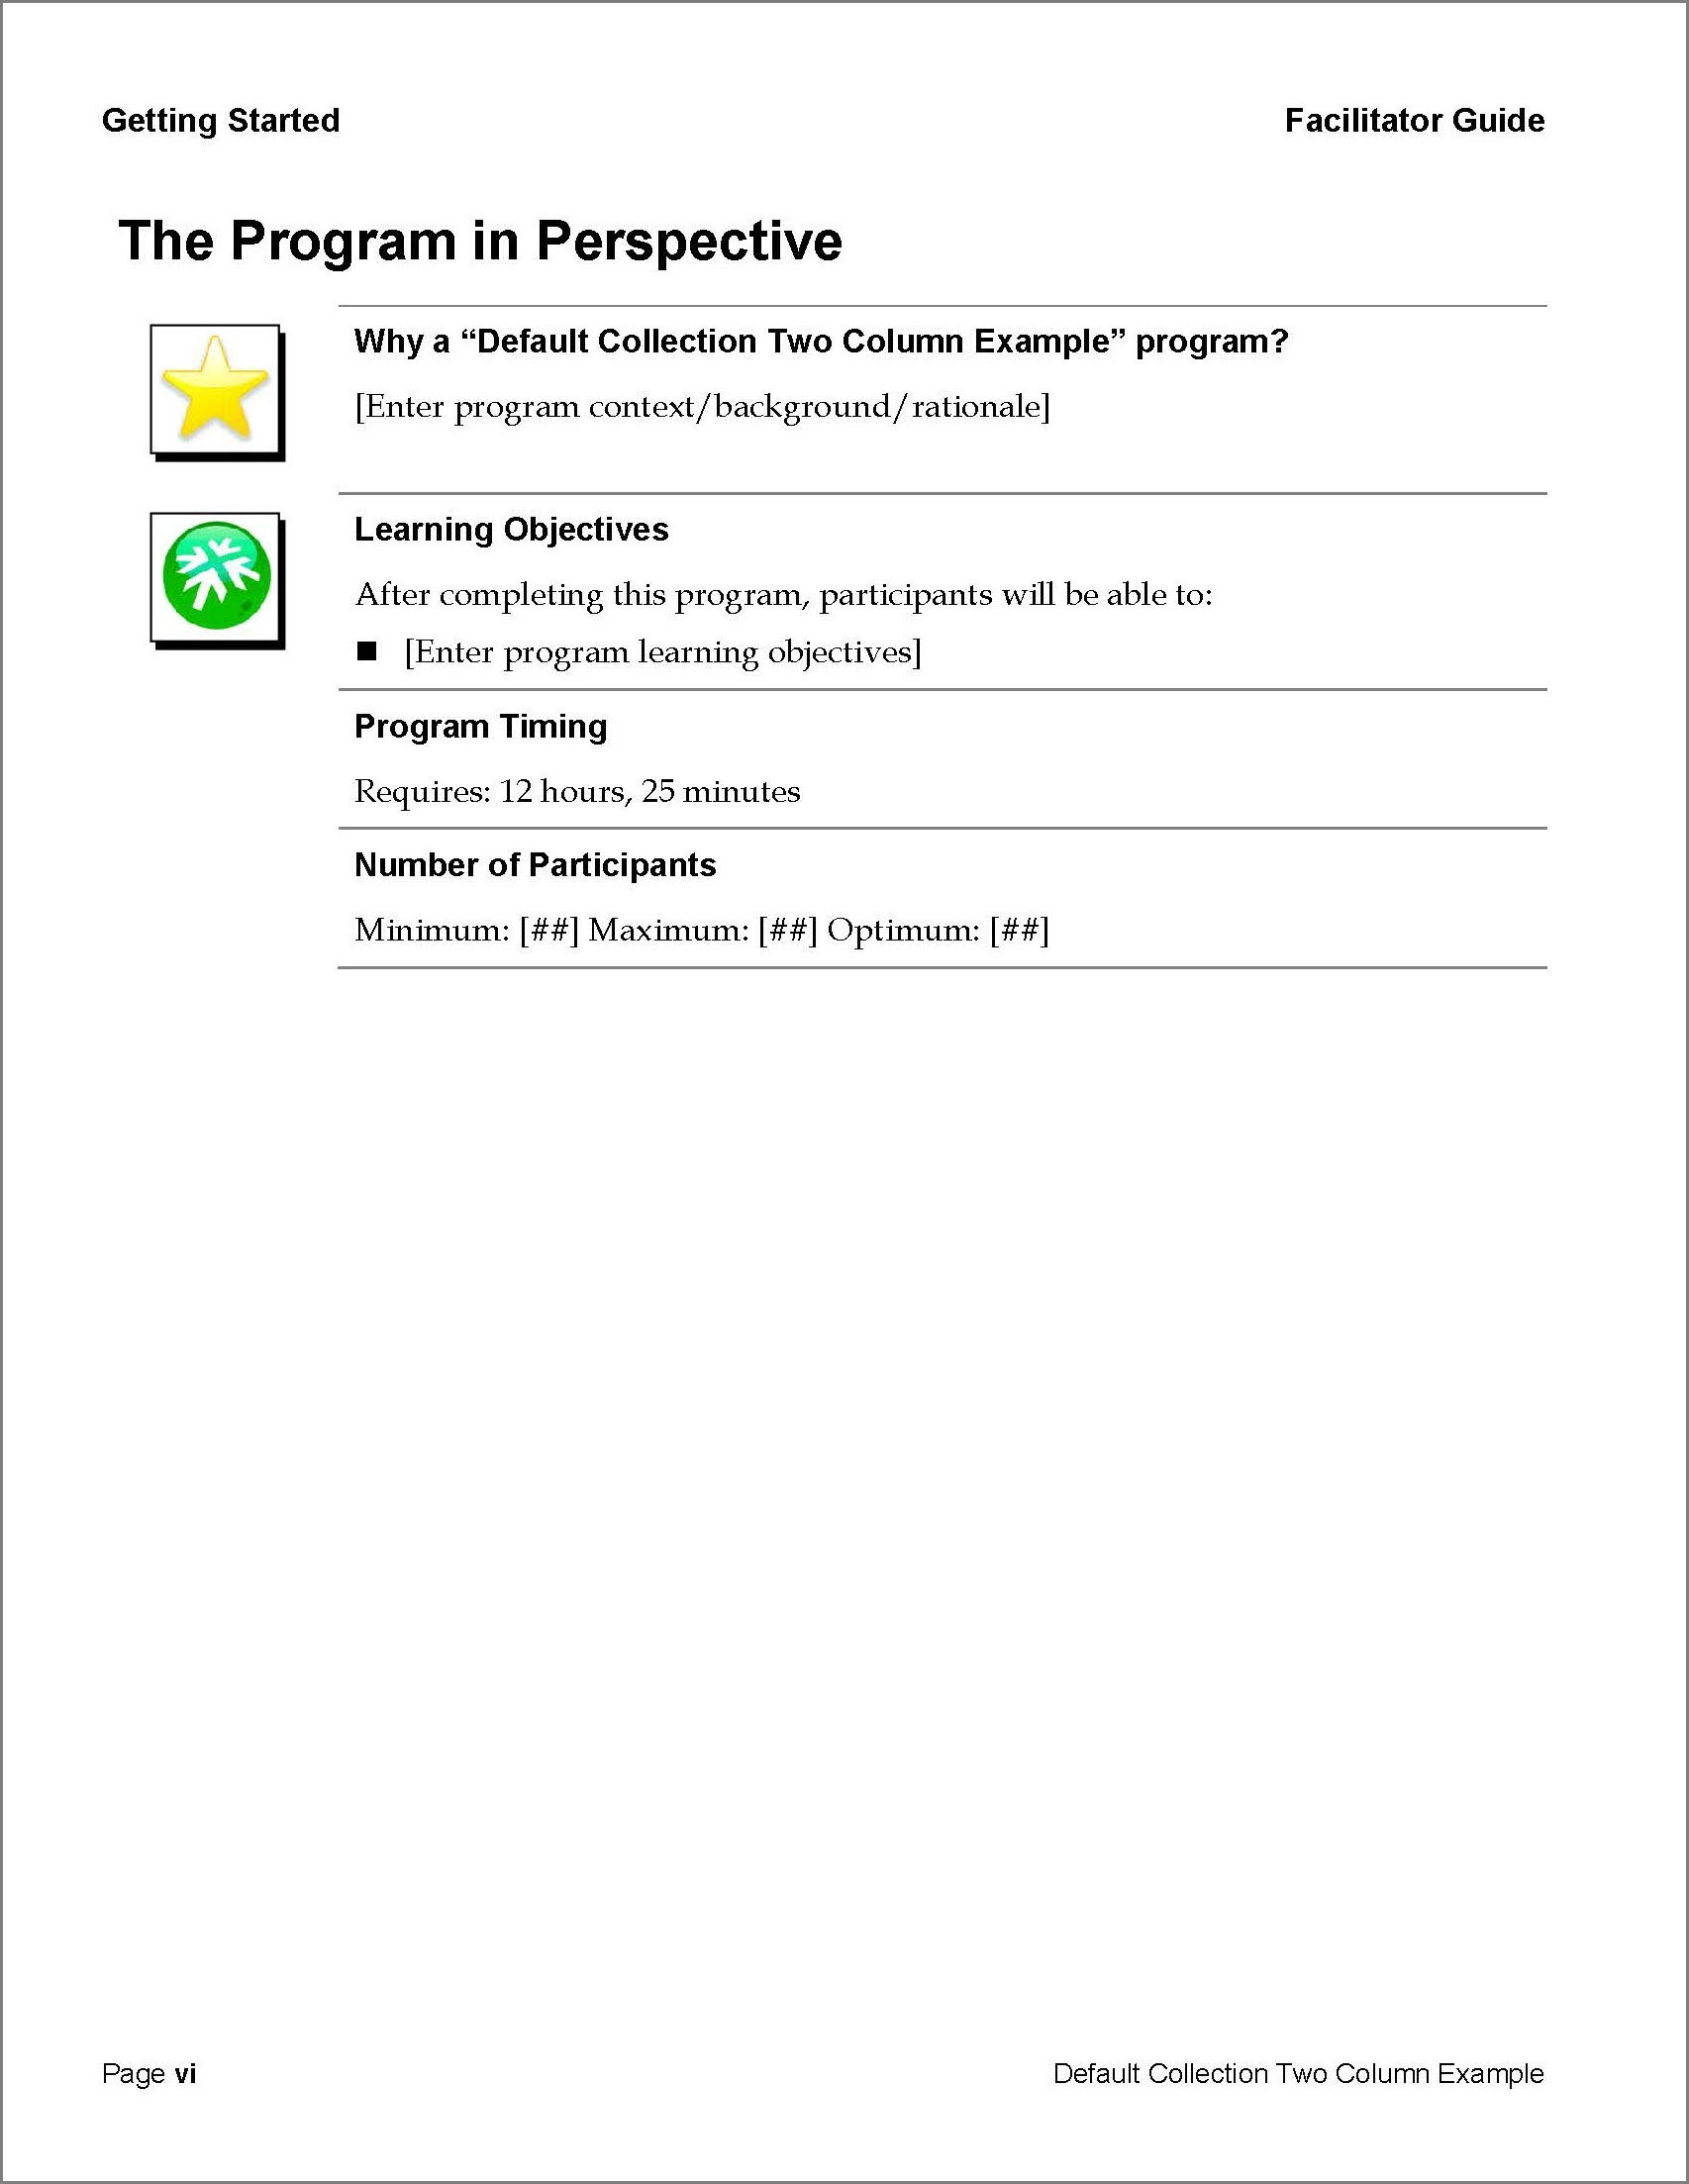 Default Collection Two-Column Example Leader Guide_Page_08.jpg